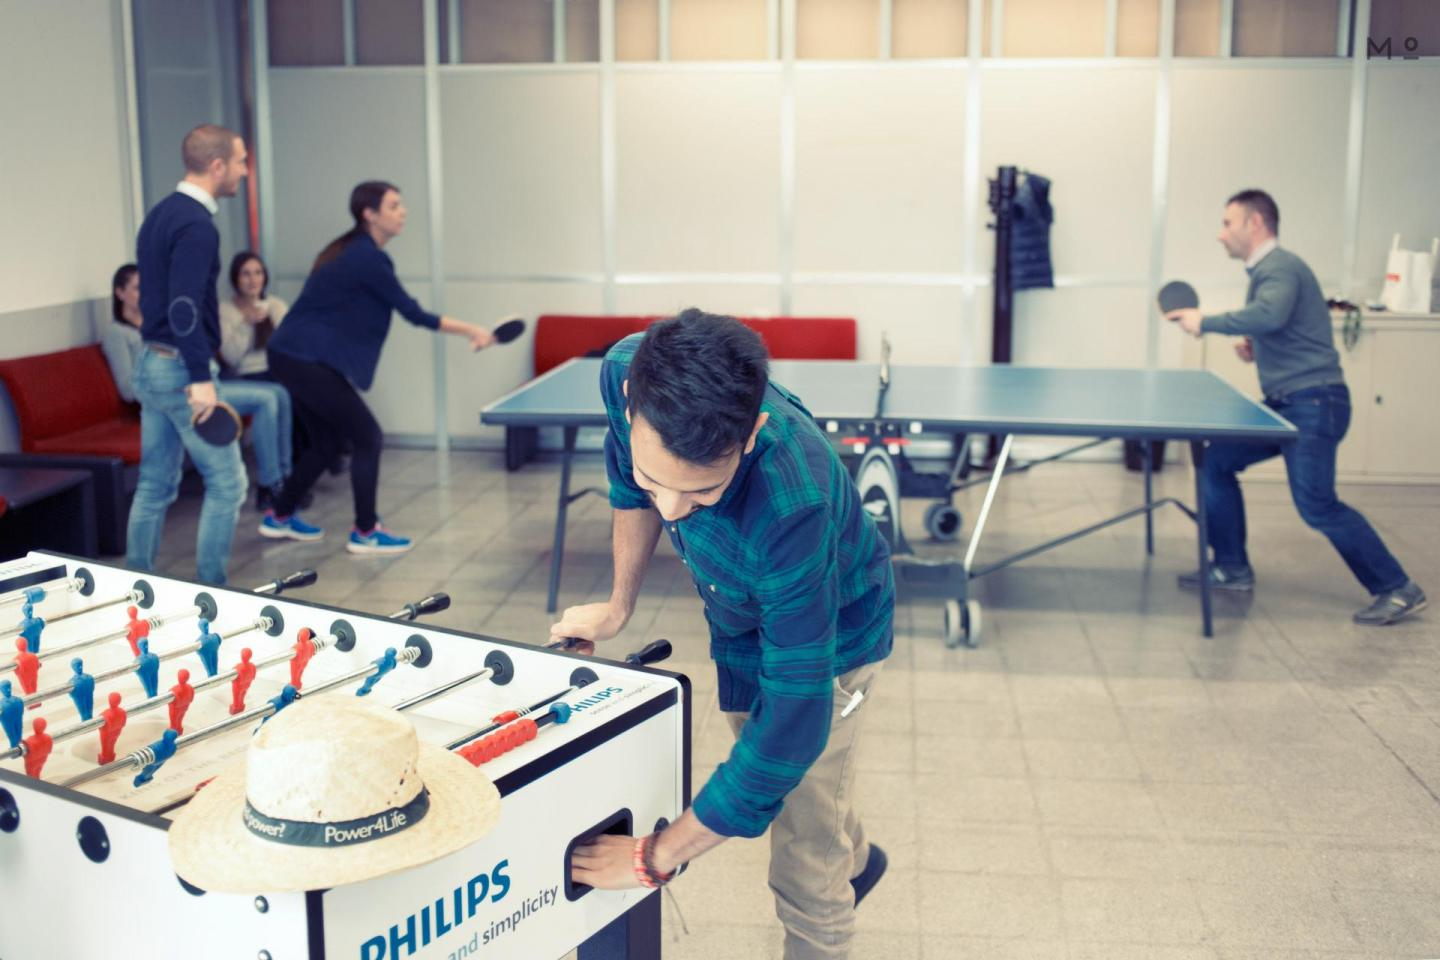 Philips jobs: careers opportunities | Meritocracy